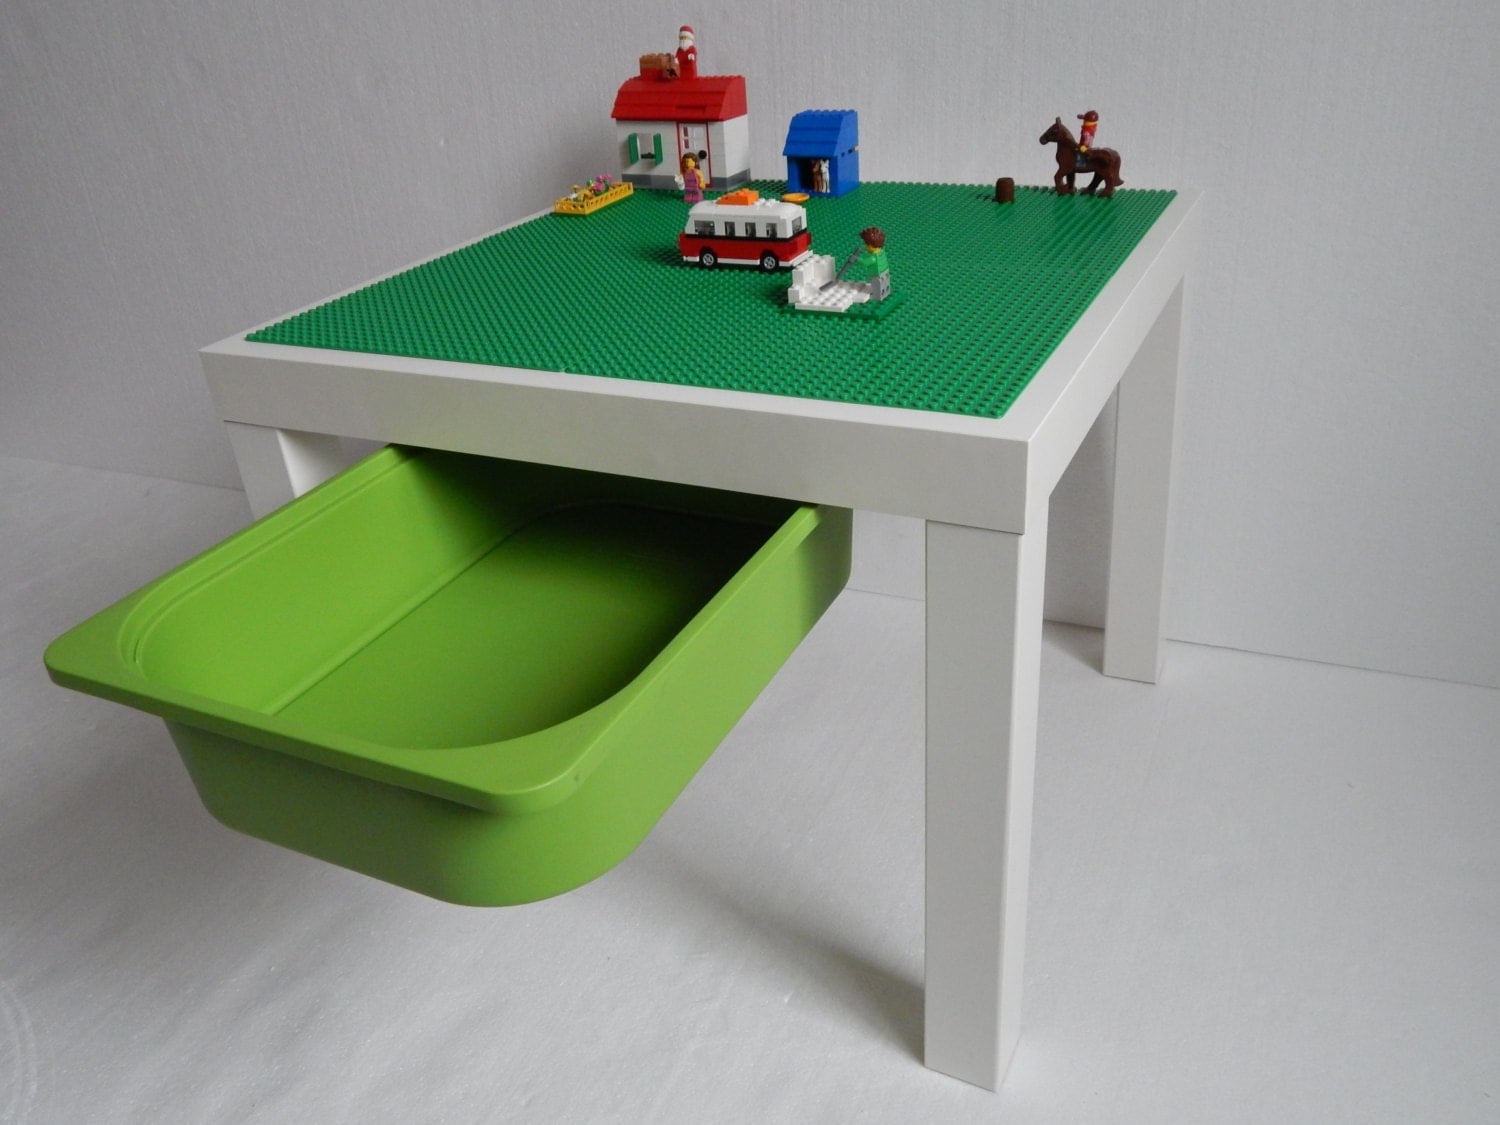 Kids LEGO® Table with Storage. Large 20x20 Green